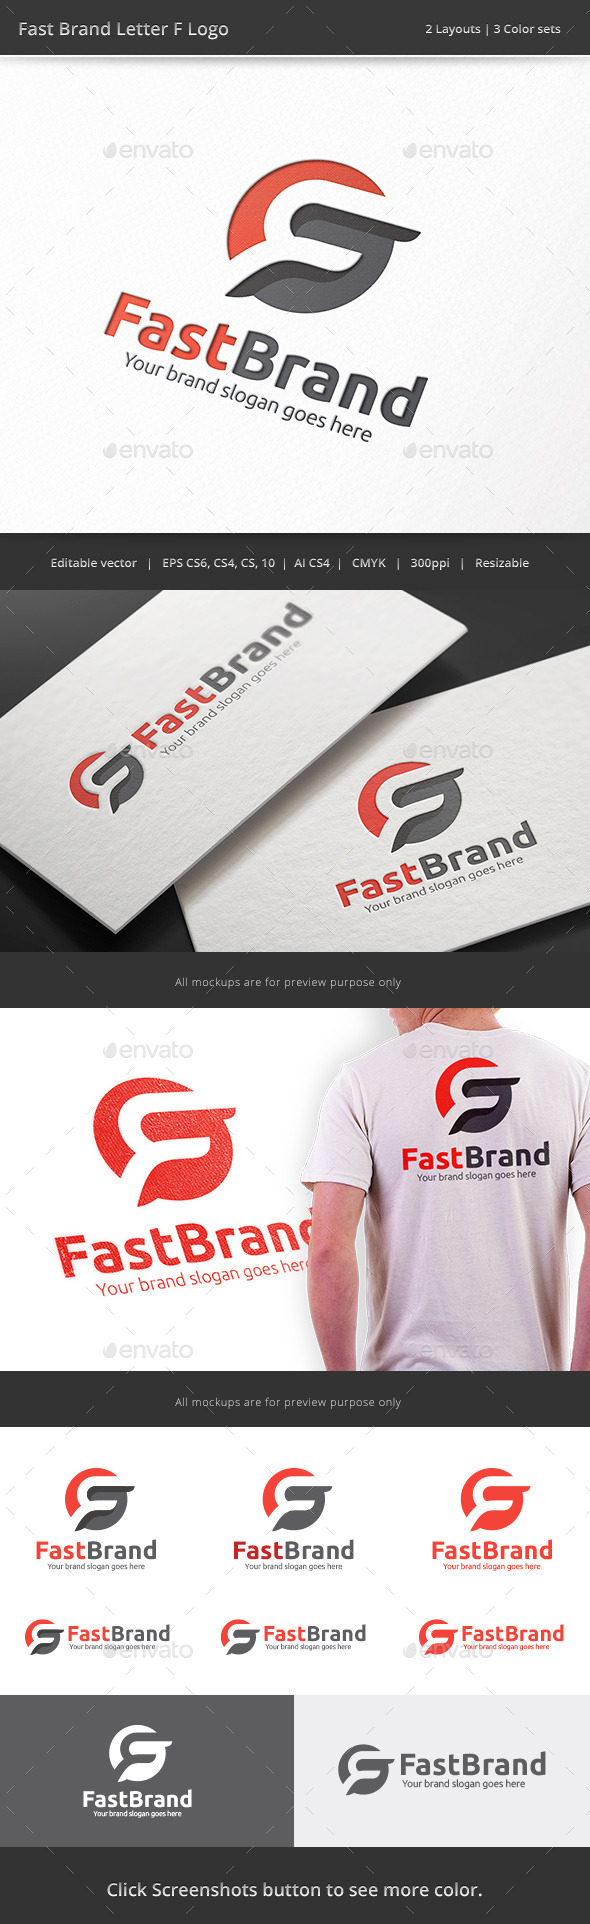 Fast Brand Letter F Logo - Letters Logo Templates